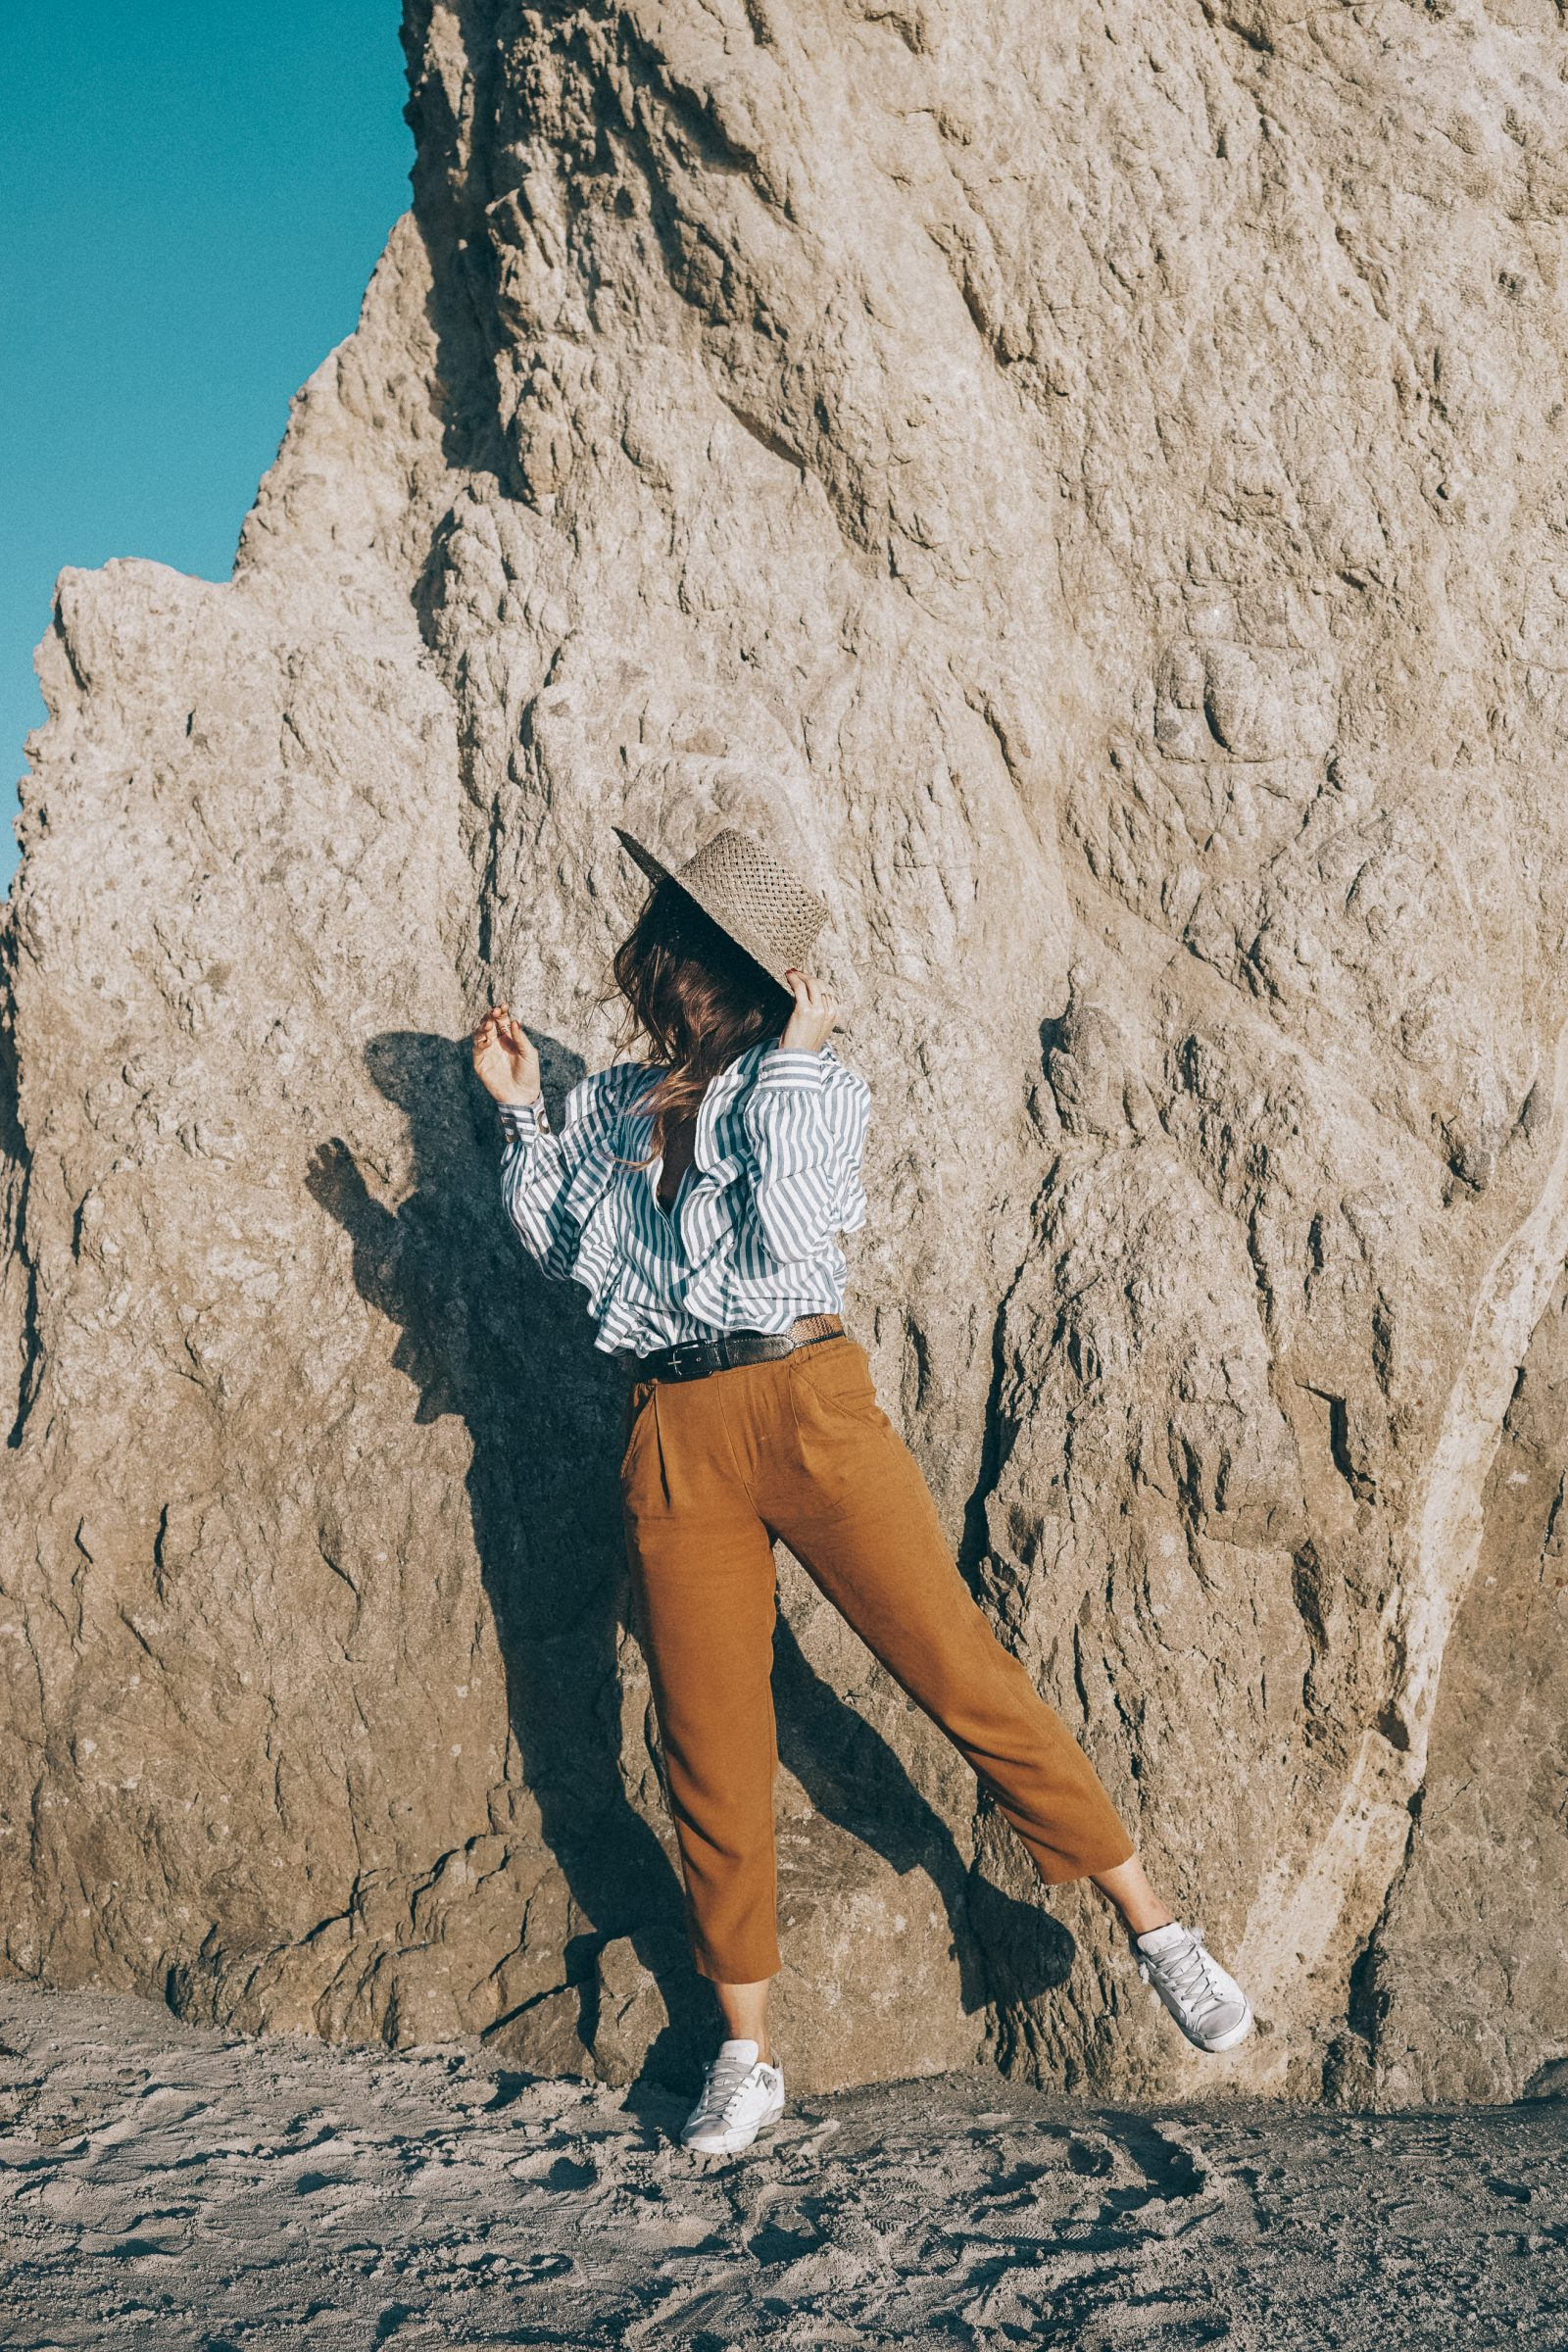 stripped_blouse-camel_trousers-lack_of_color_hat-wanderlust_jewels-matador_beach-malibu-golden_goose_sneakers-street_style-collage_vintage-111